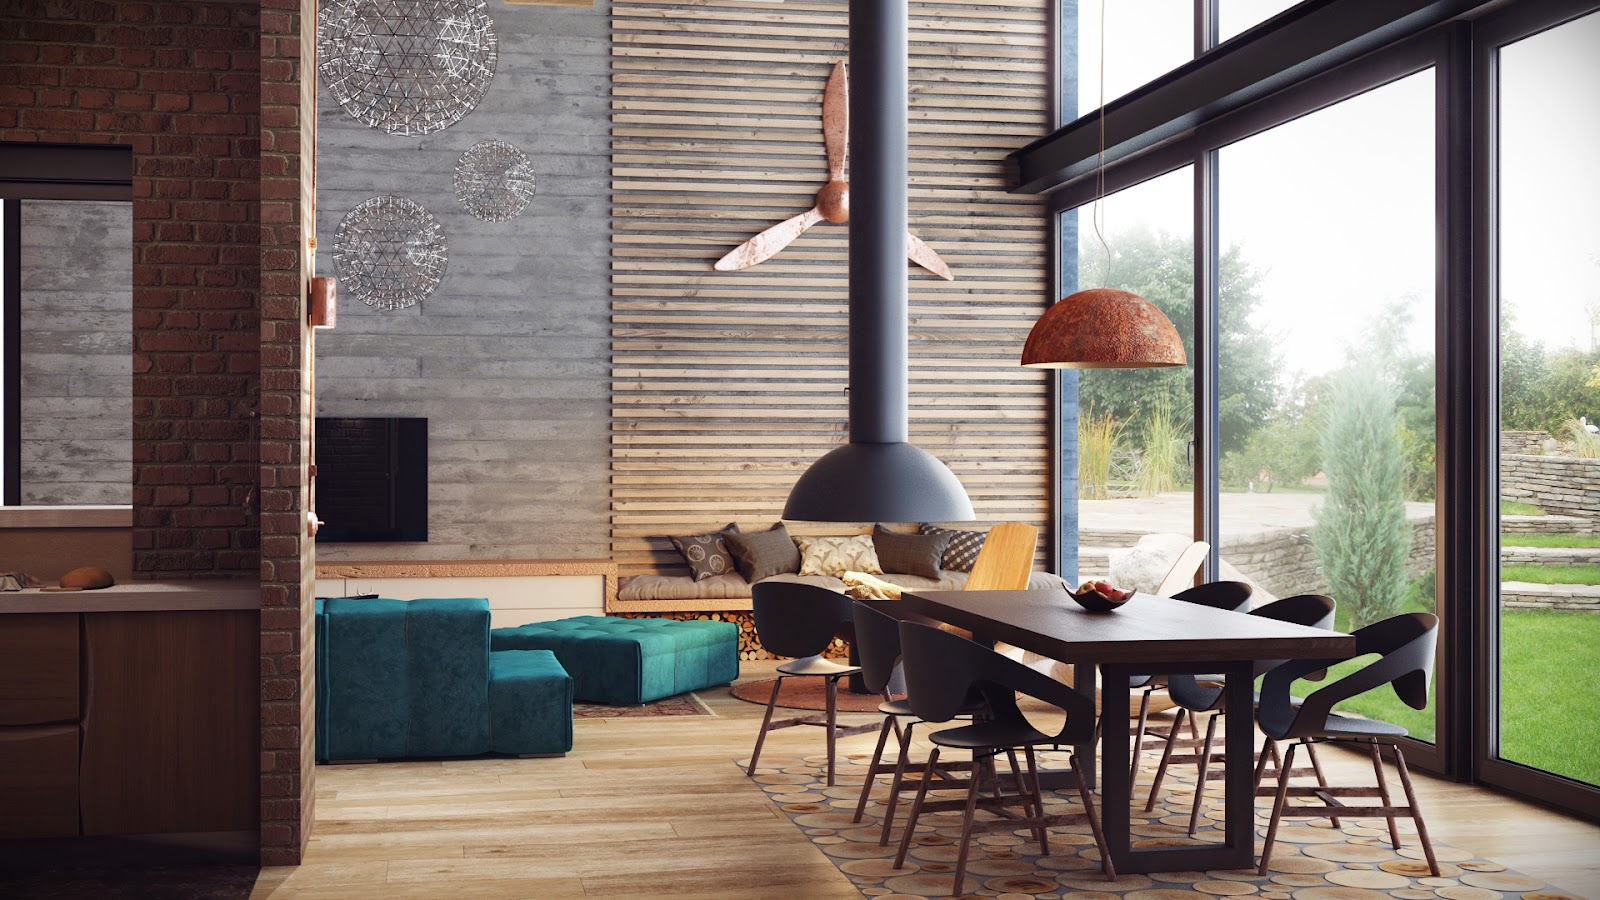 The entire space is warmed by the wooden ceiling panels, which also succeed in making